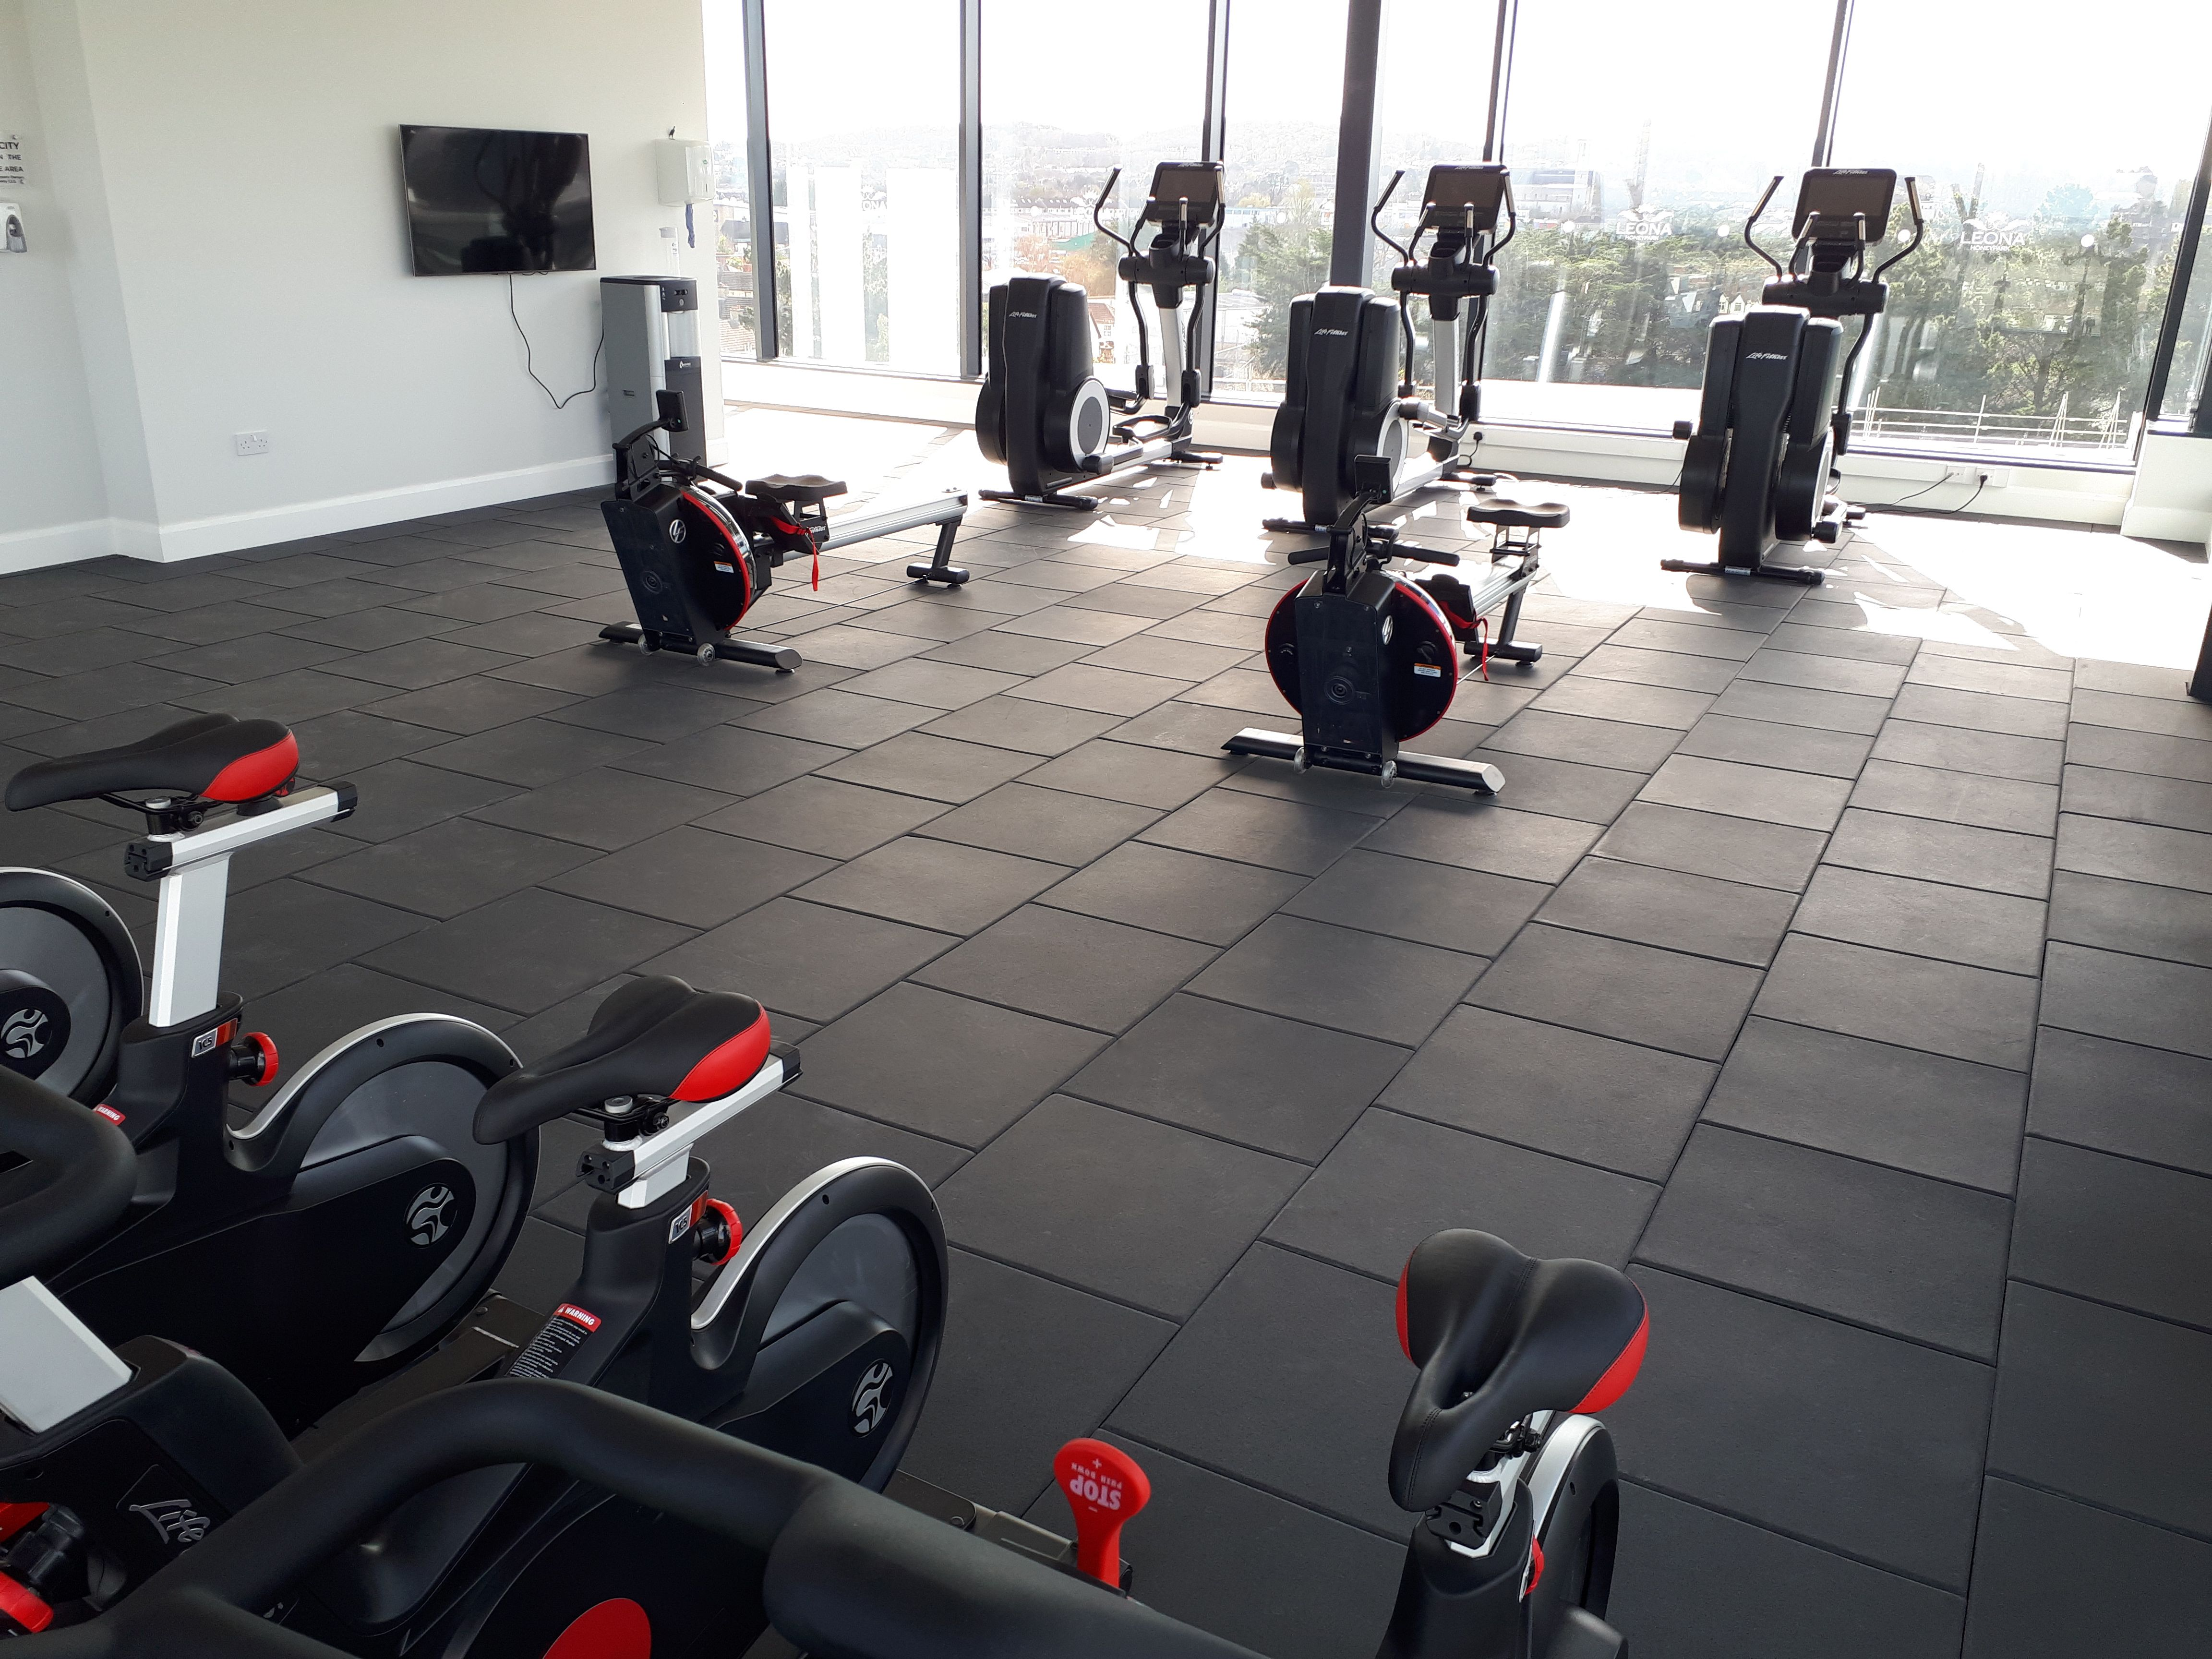 Gerflor S Vulcanised Rubberflooring Powershock 300 Has Been Used To Fit Out This Stunning 360 Degree Gym At Honeypark Ap Floor Workouts Apartment Case Study